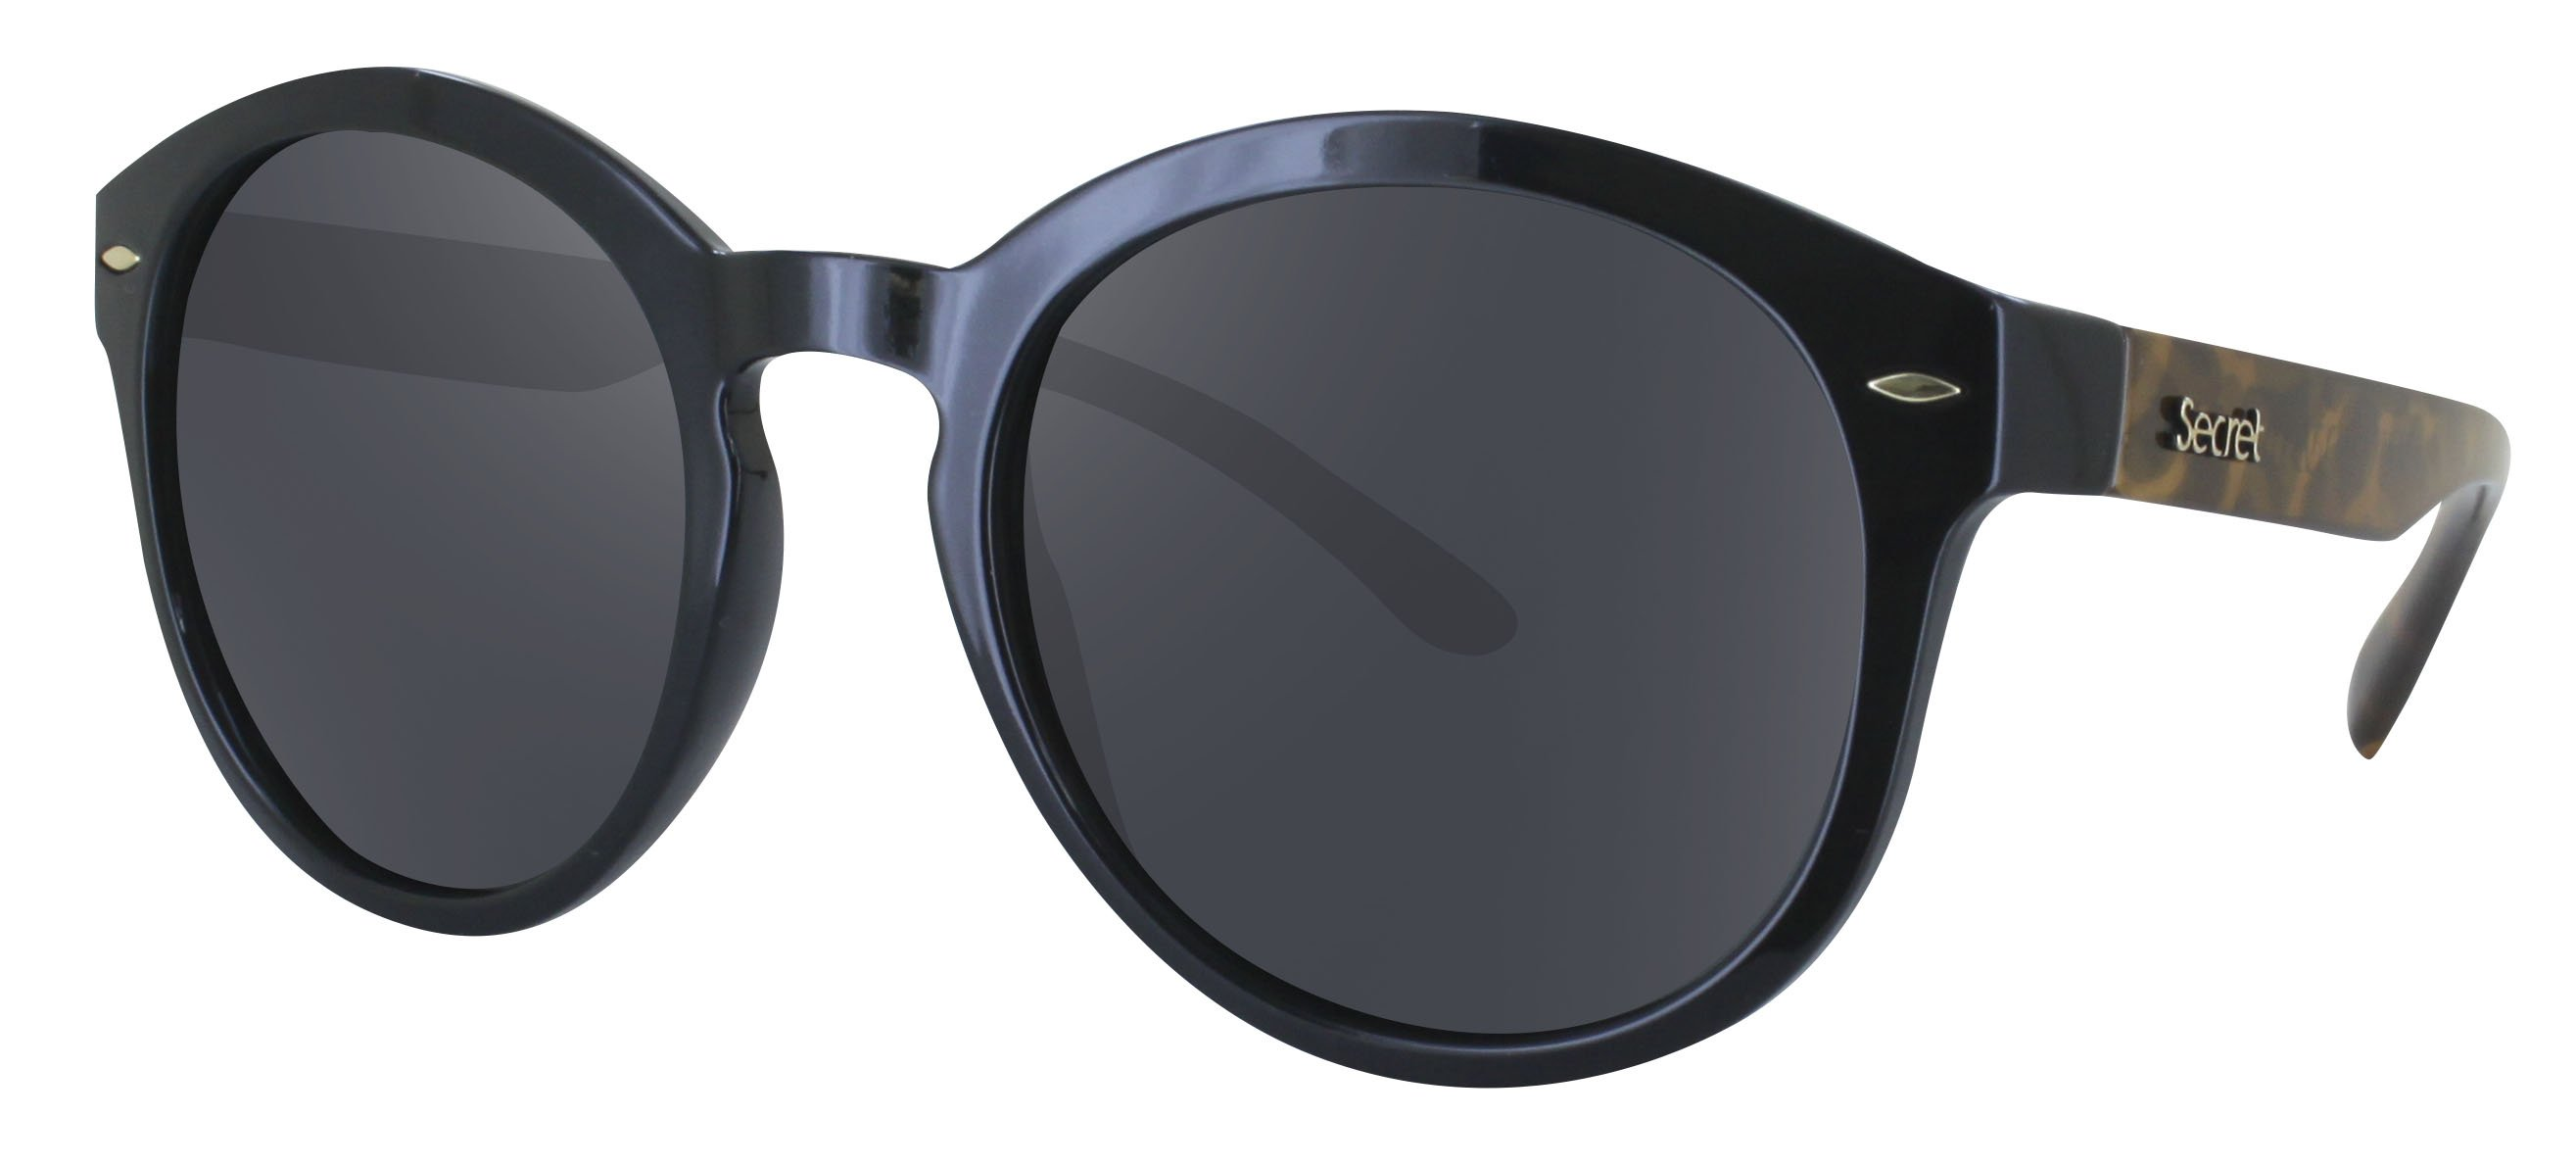 ÓC SECRET WANNABE G.BLACK/HAVANA TURTLE / POLARIZED GRAY